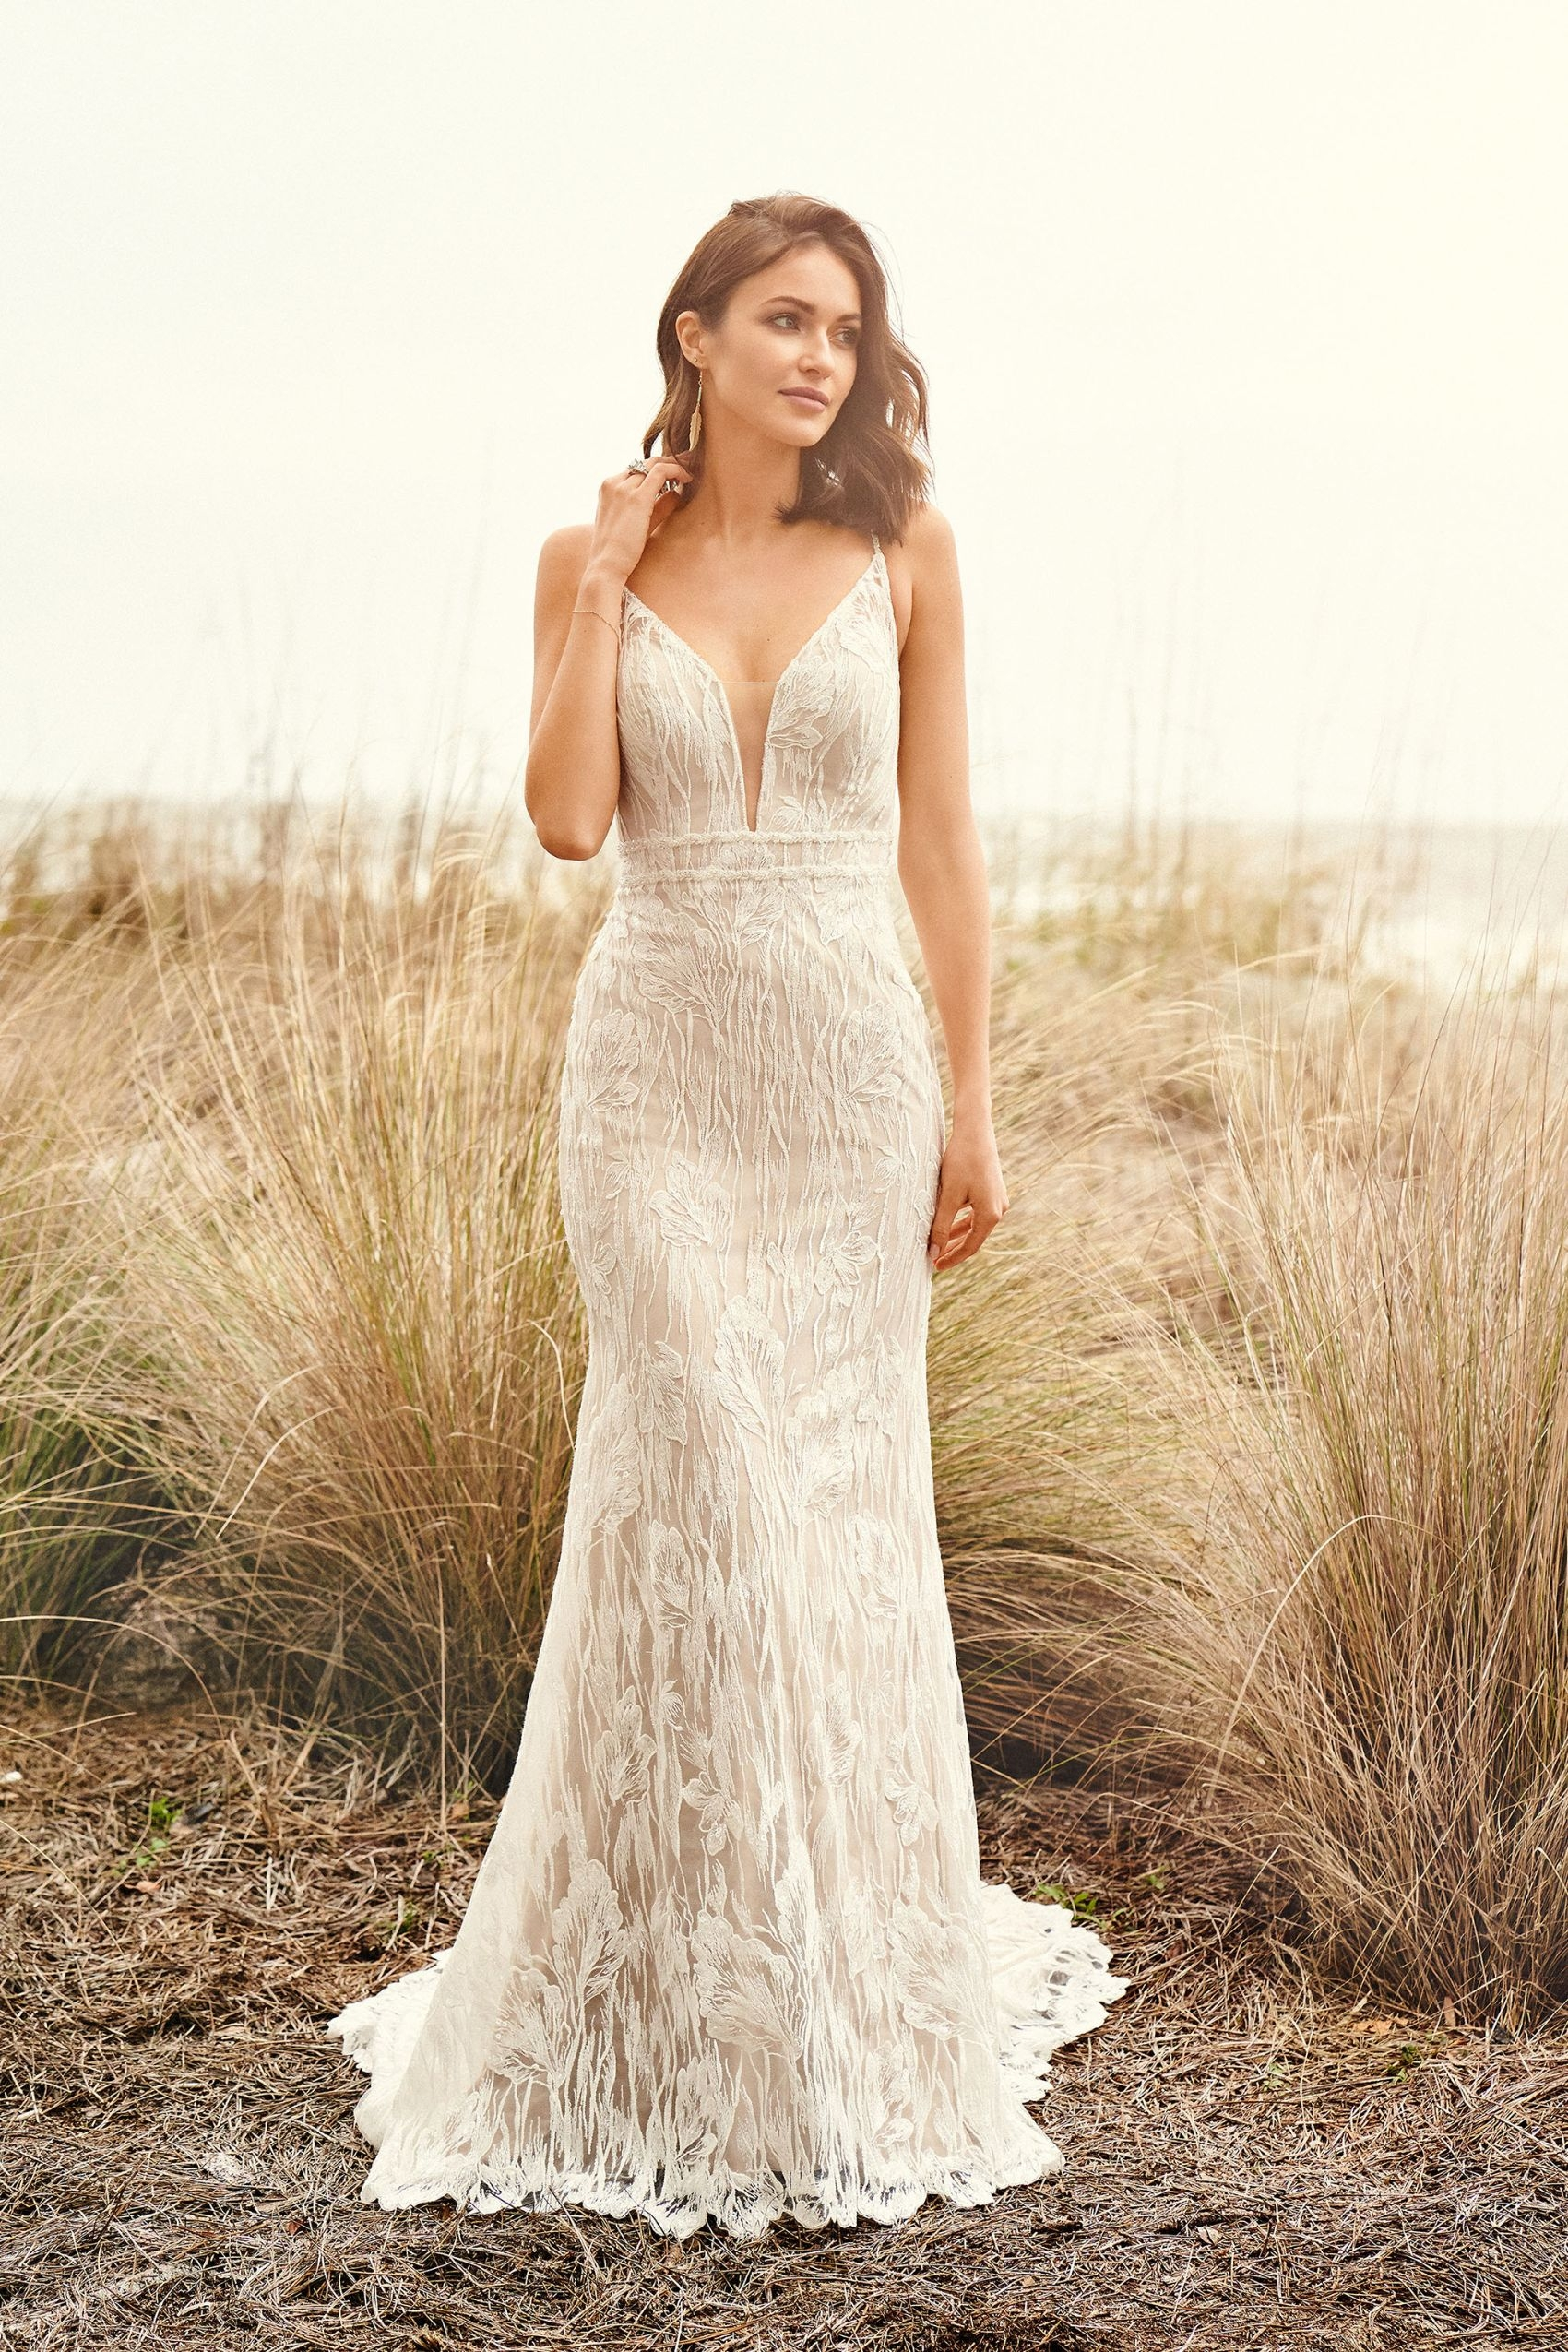 66103 - Allover lace fit and flare gown with sweep length train